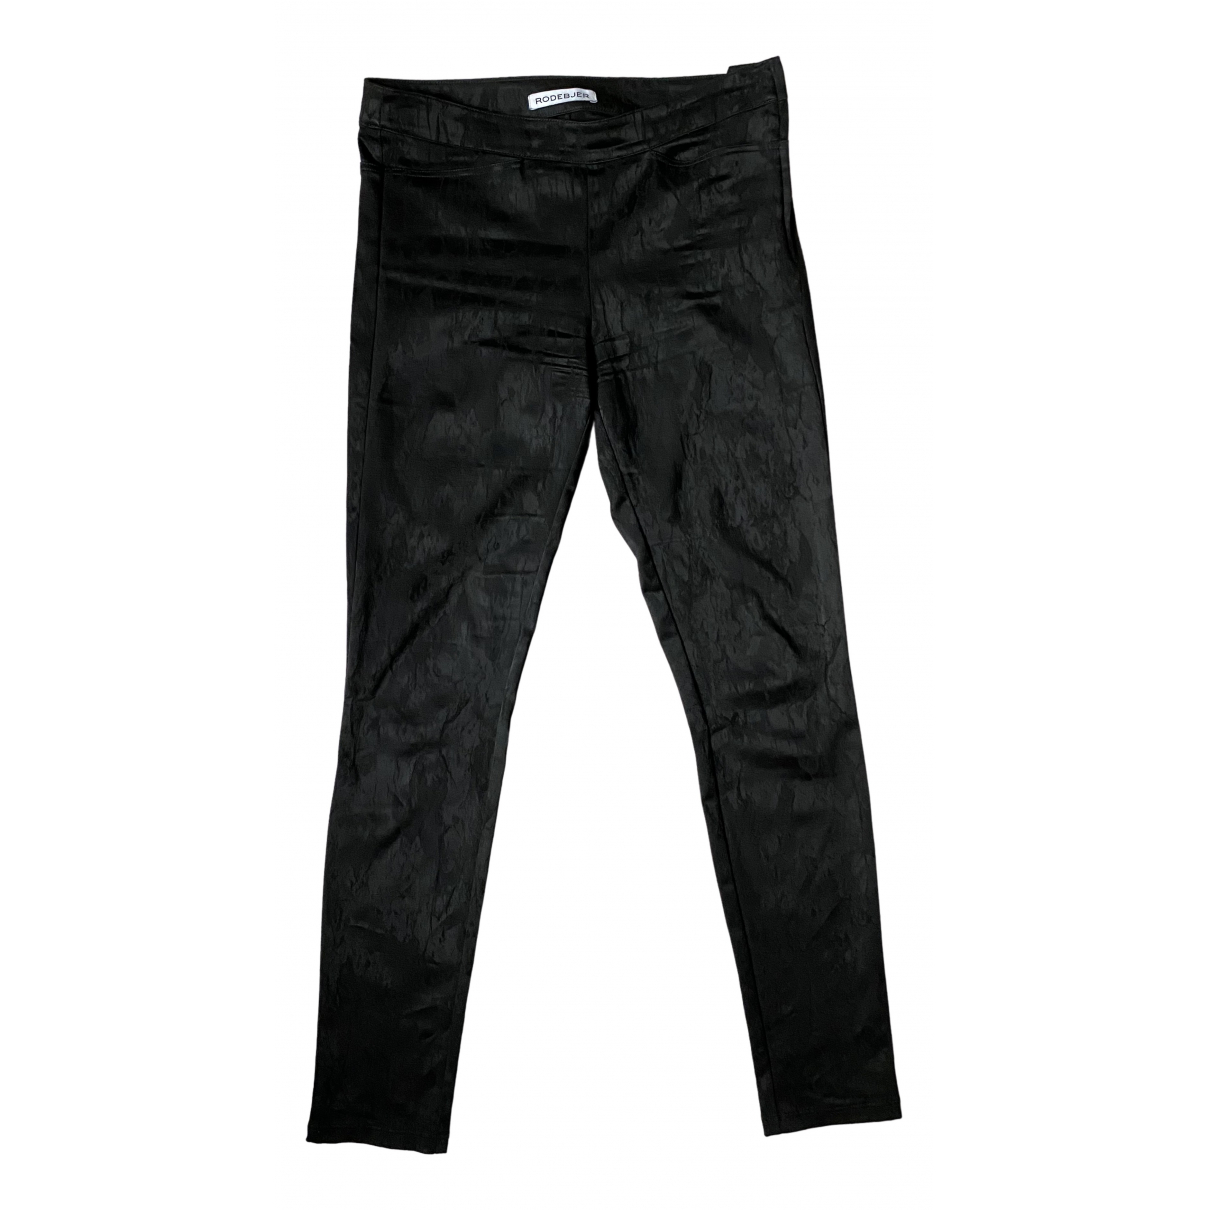 Rodebjer N Black Trousers for Women M International